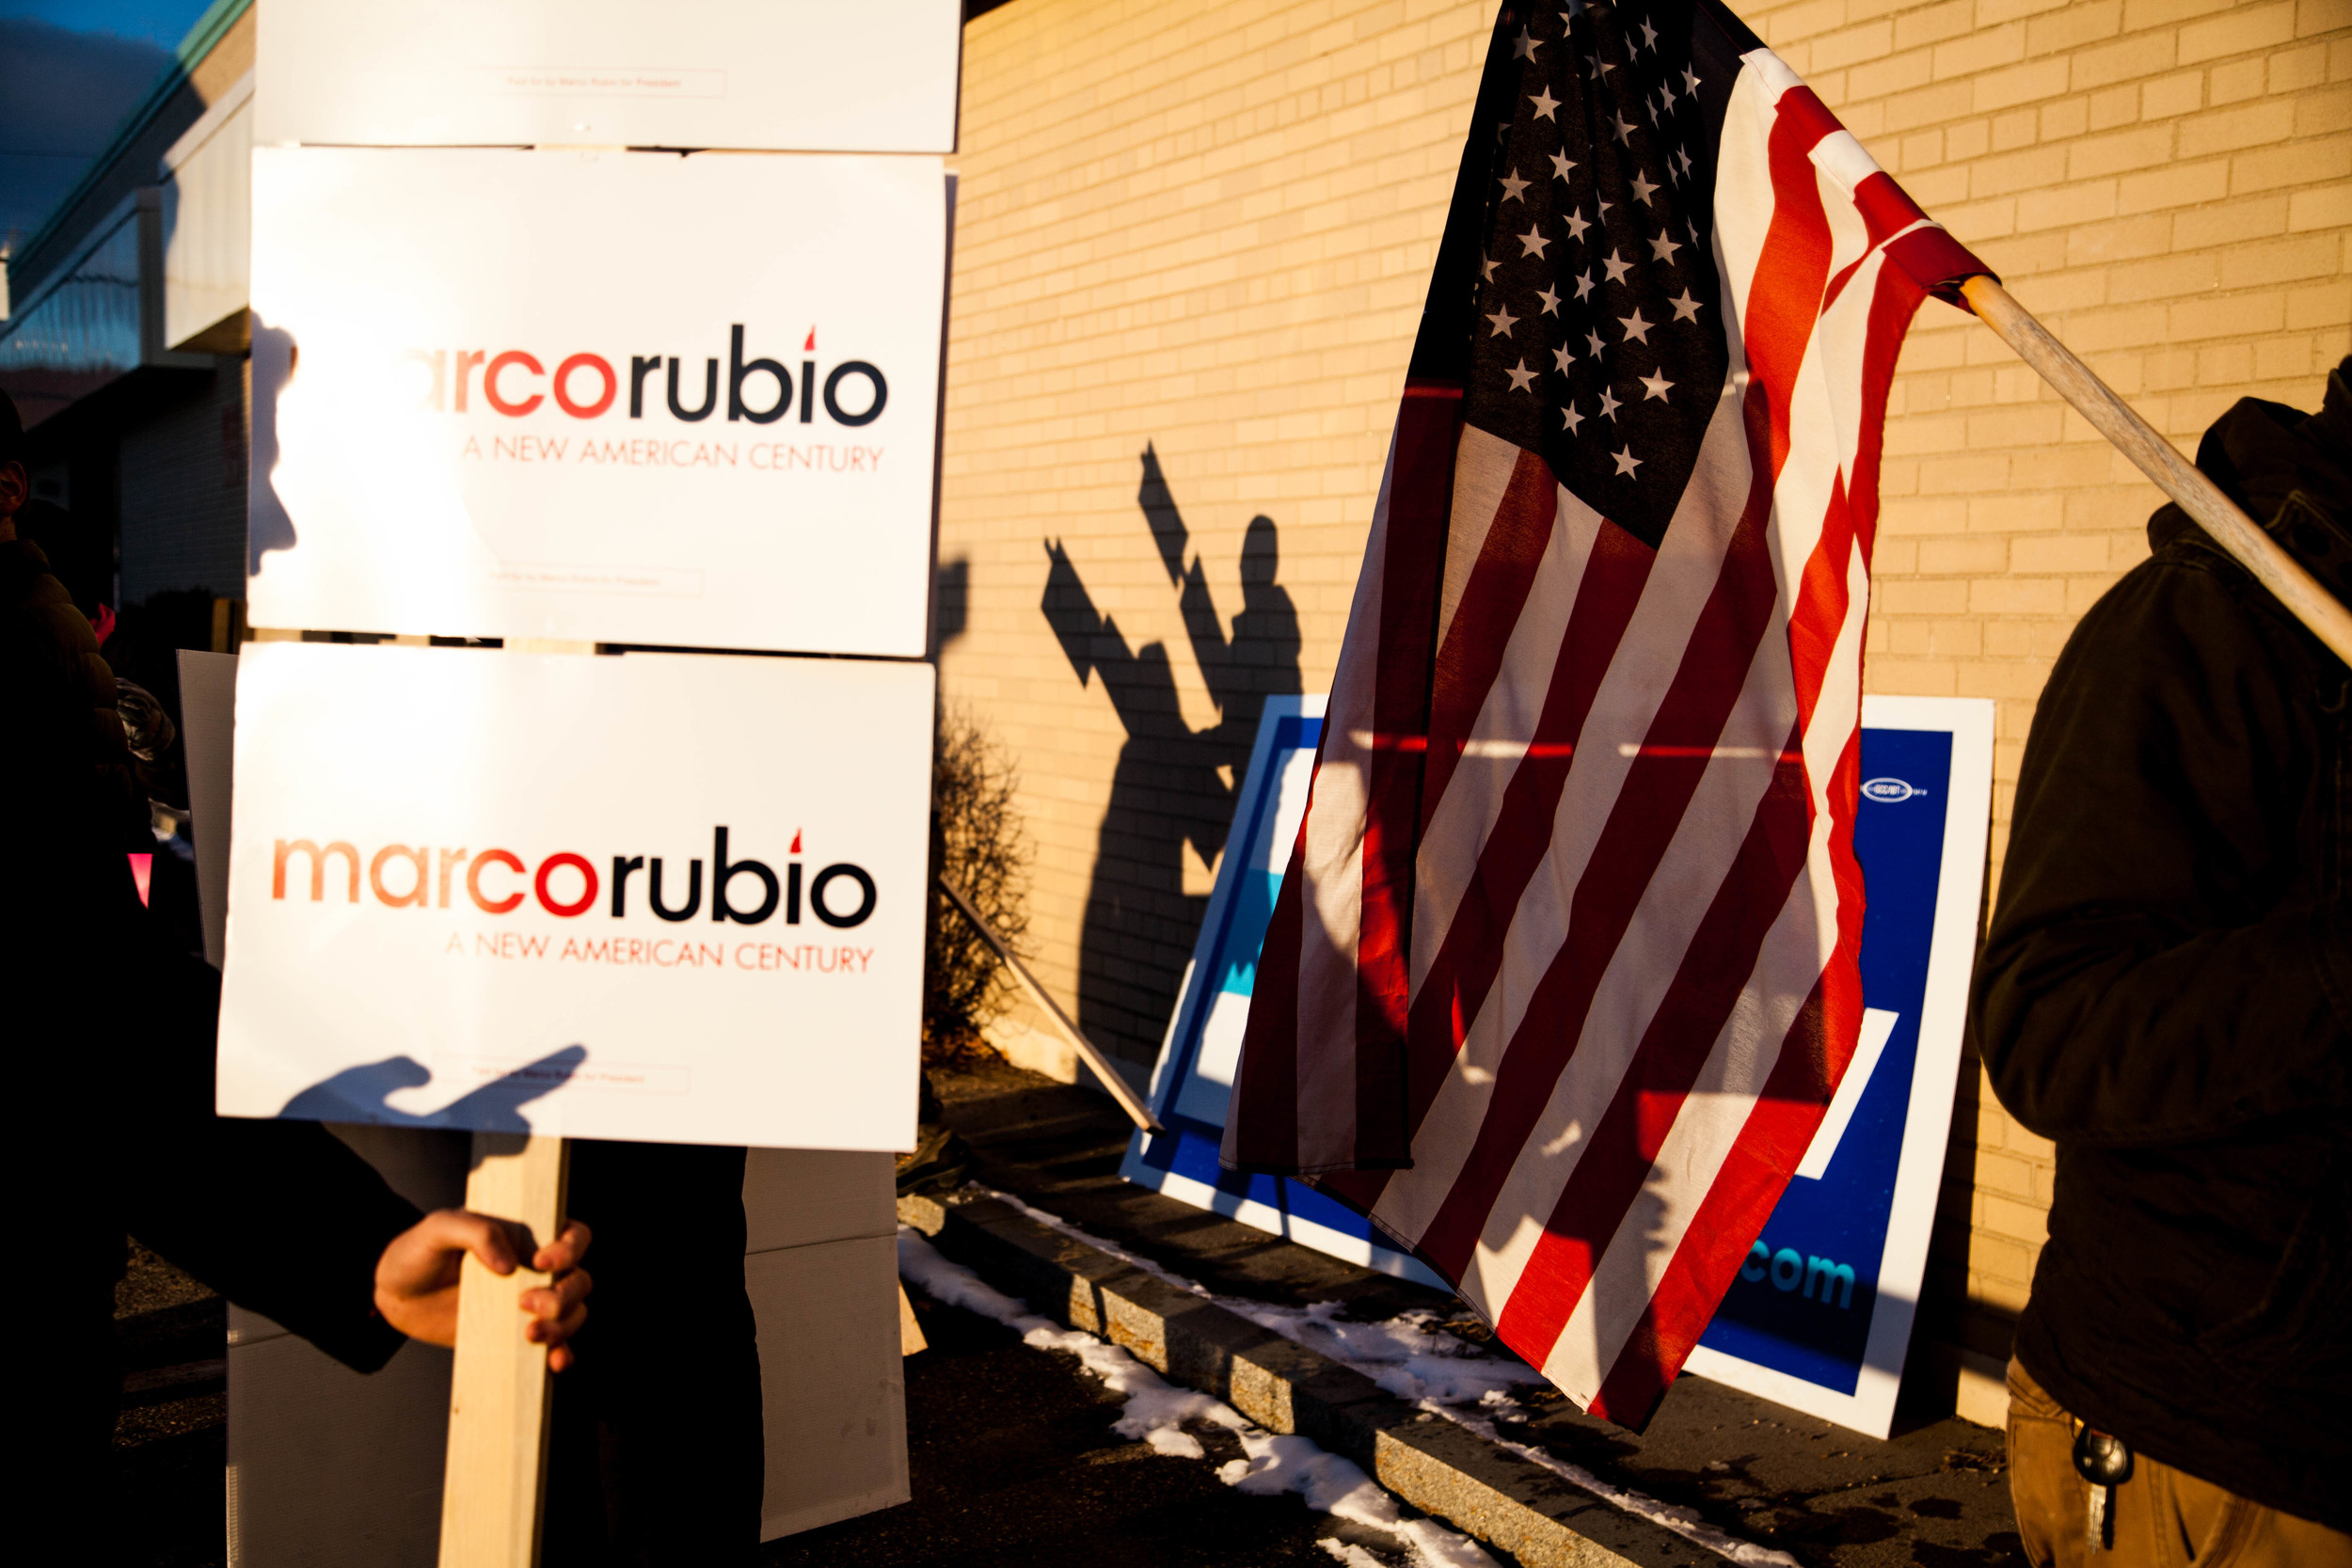 Manchester,NH, Feb. 9, 2016 - Supporters of Donald Trump, Hillary Clinton and Marco Rubio stand side by side to talk to voters as they enter a polling station at the Manchester Health Department. Photo by Alexandra Wimley